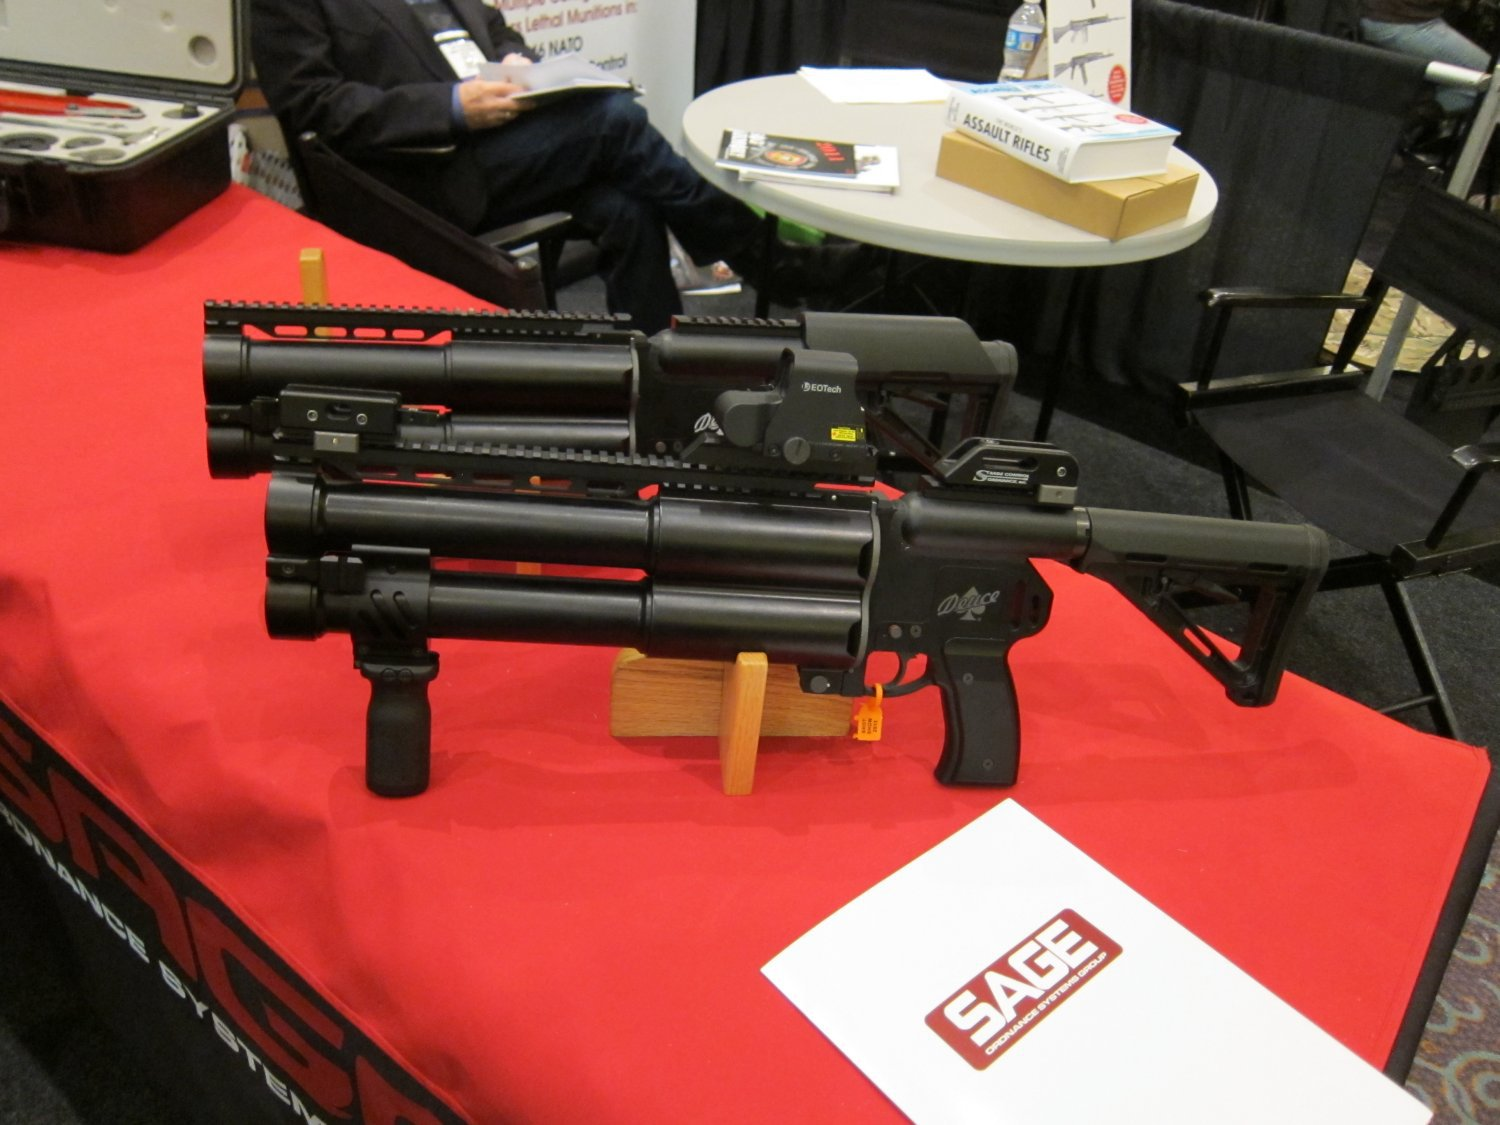 Sage Ordnance Systems Deuce Dual 40mm Grenade Launcher SHOT Show 2011 5 <!  :en  >Sage Ordnance Systems Deuce Over/Under Dual 40mm (40x46mm NATO)/37mm Sage Rifled/37mm Smooth Bore Grenade Launcher and Prototype Mag Fed Semi Auto 37mm Grenade Launcher <!  :  >